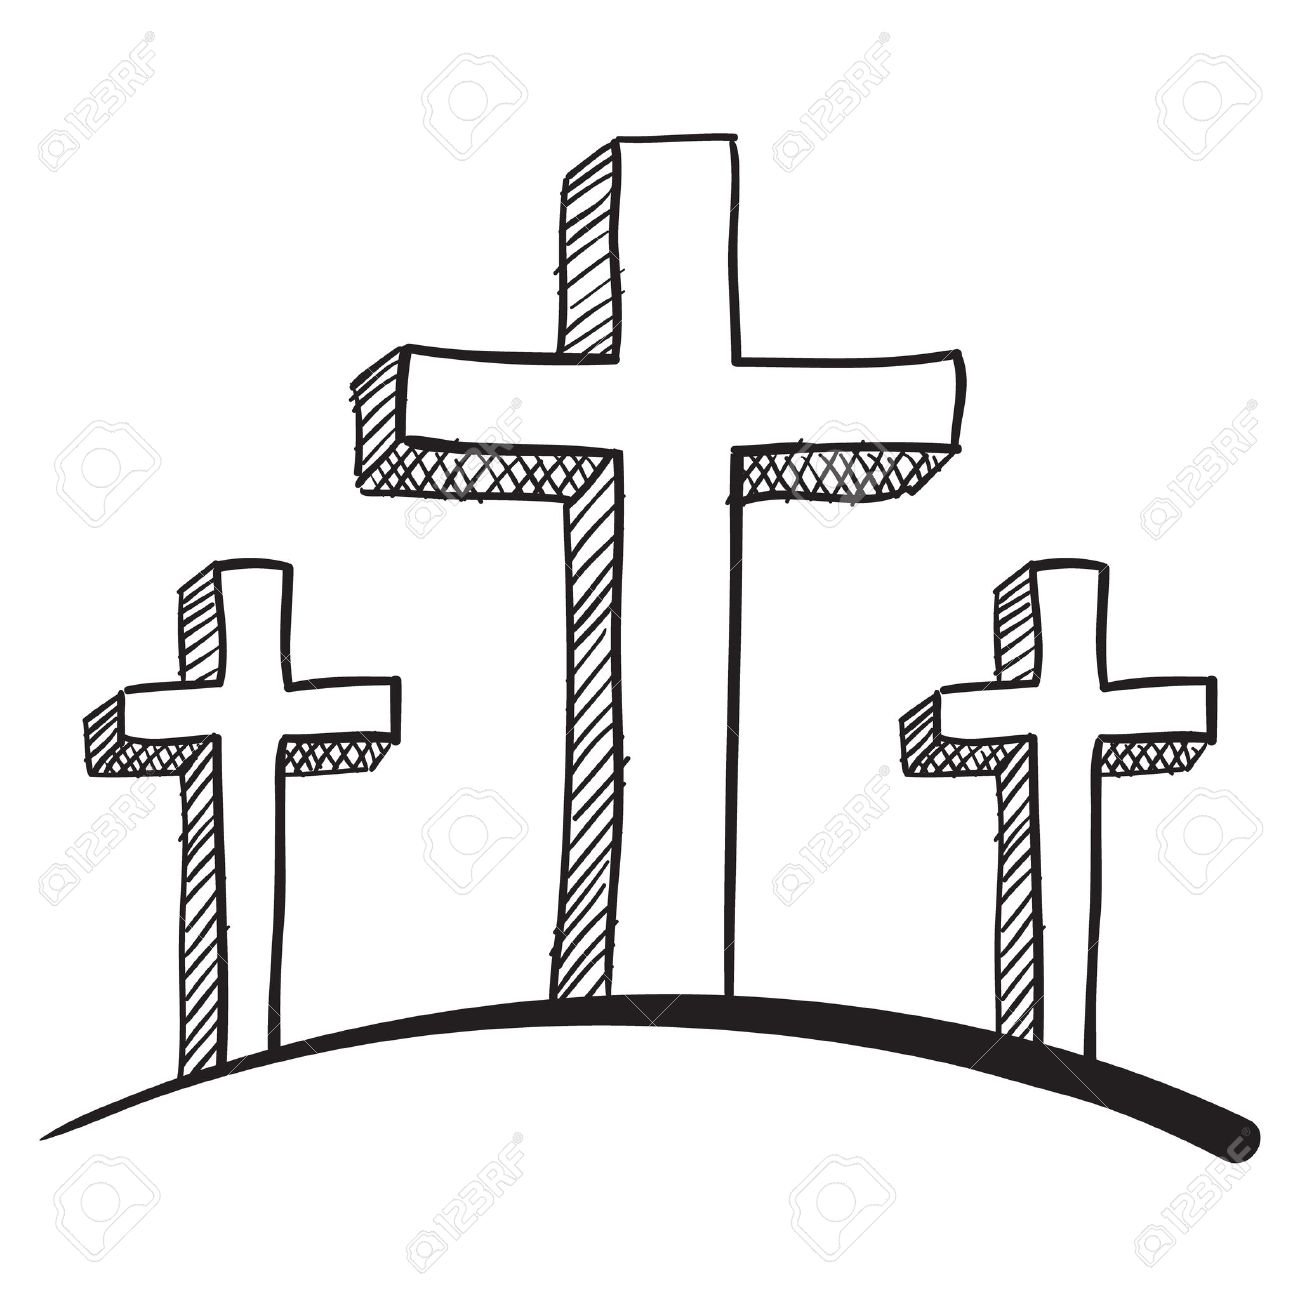 Doodle style calgary crucifix vector illustration Stock Vector - 11547553